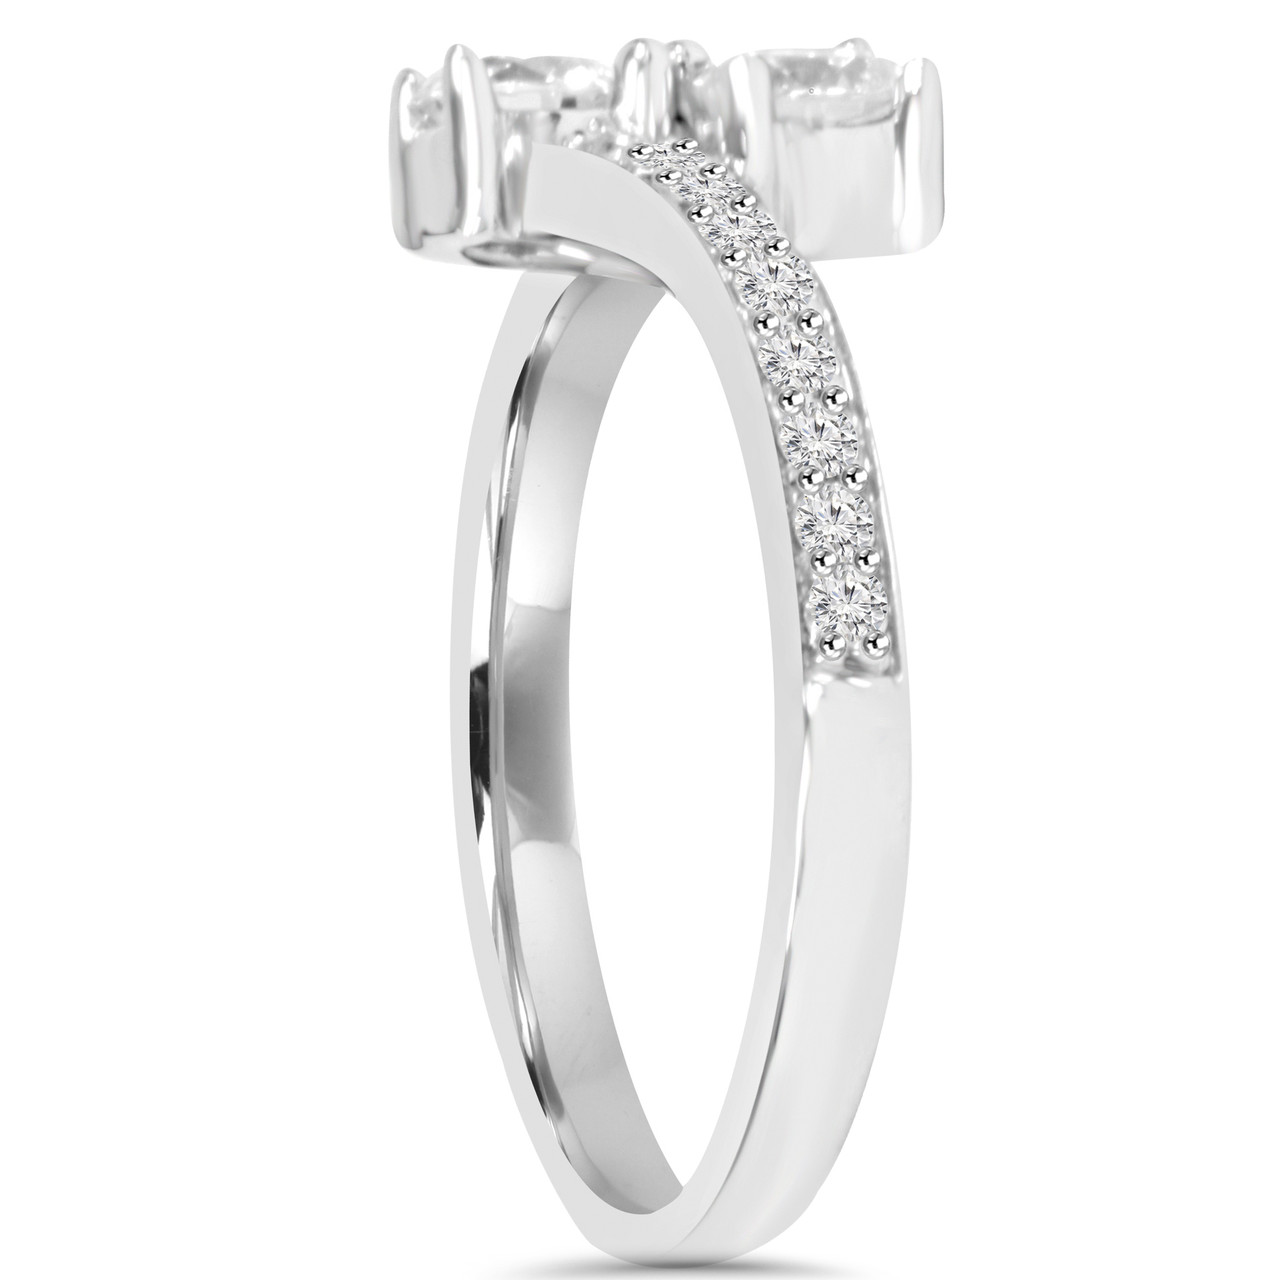 Tempting South Africa Stone Forever Us Lab Created Diamond Engagement Ring Stone Forever Us Lab Created Diamond Engagement Ring Lab Created Diamond Rings Uk Lab Created Diamond Rings wedding rings Lab Created Diamond Rings